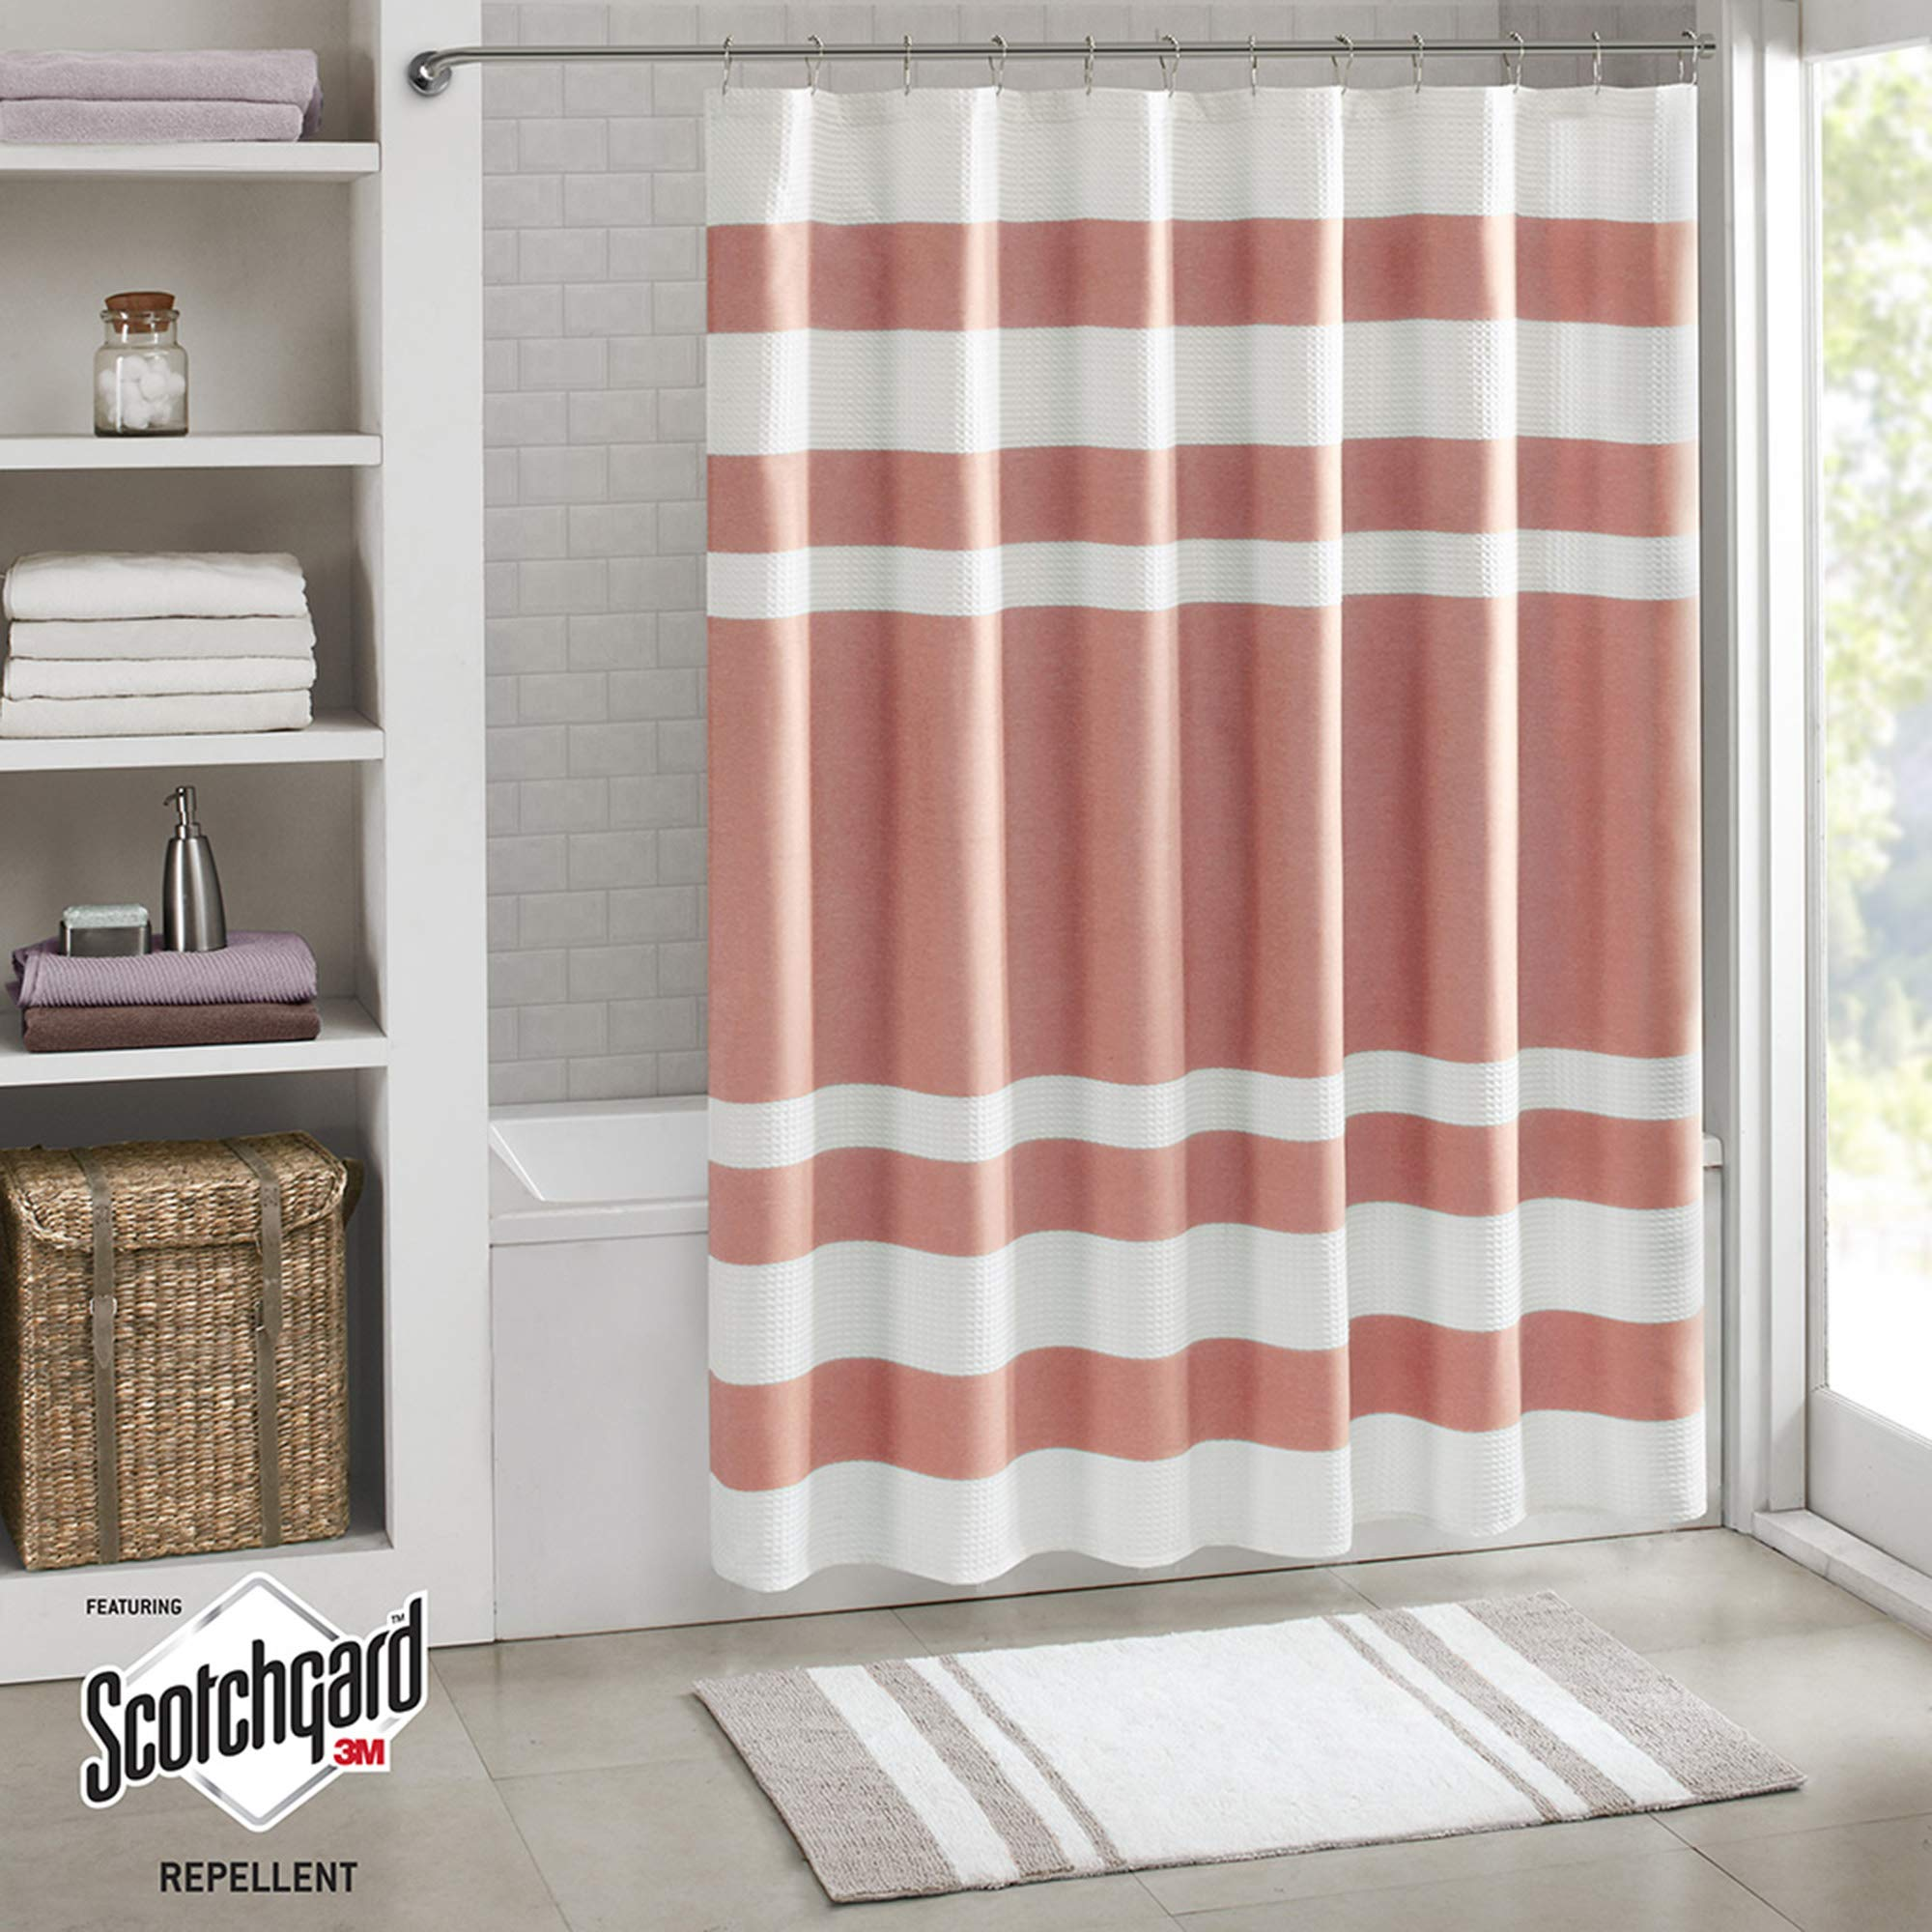 Madison Park Spa Waffle Shower Curtain Pieced Solid Microfiber Fabric with 3M Scotchgard Water Repellent Treatment Modern Home Bathroom Decorations, Standard 72X72, Coral